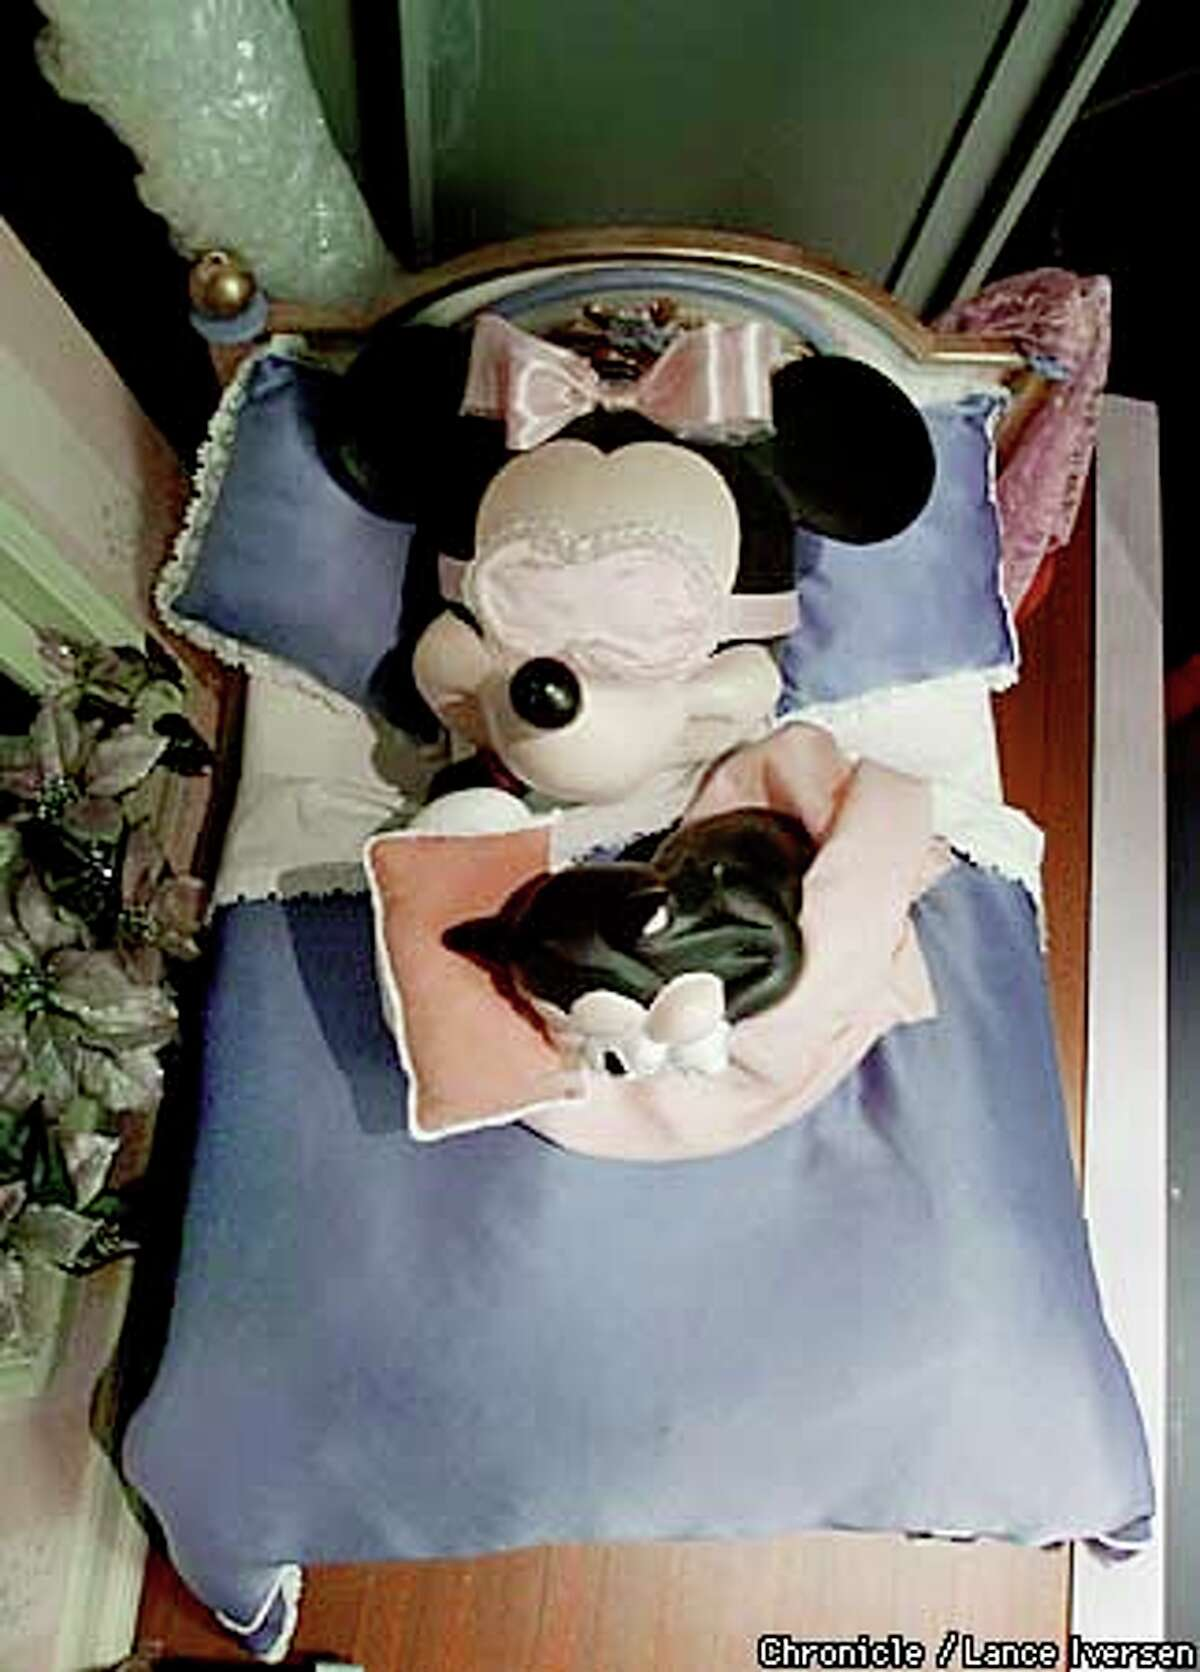 Minnie Mouse naps with her pet cat in another Macy's window. Chronicle photo by Lance Iversen